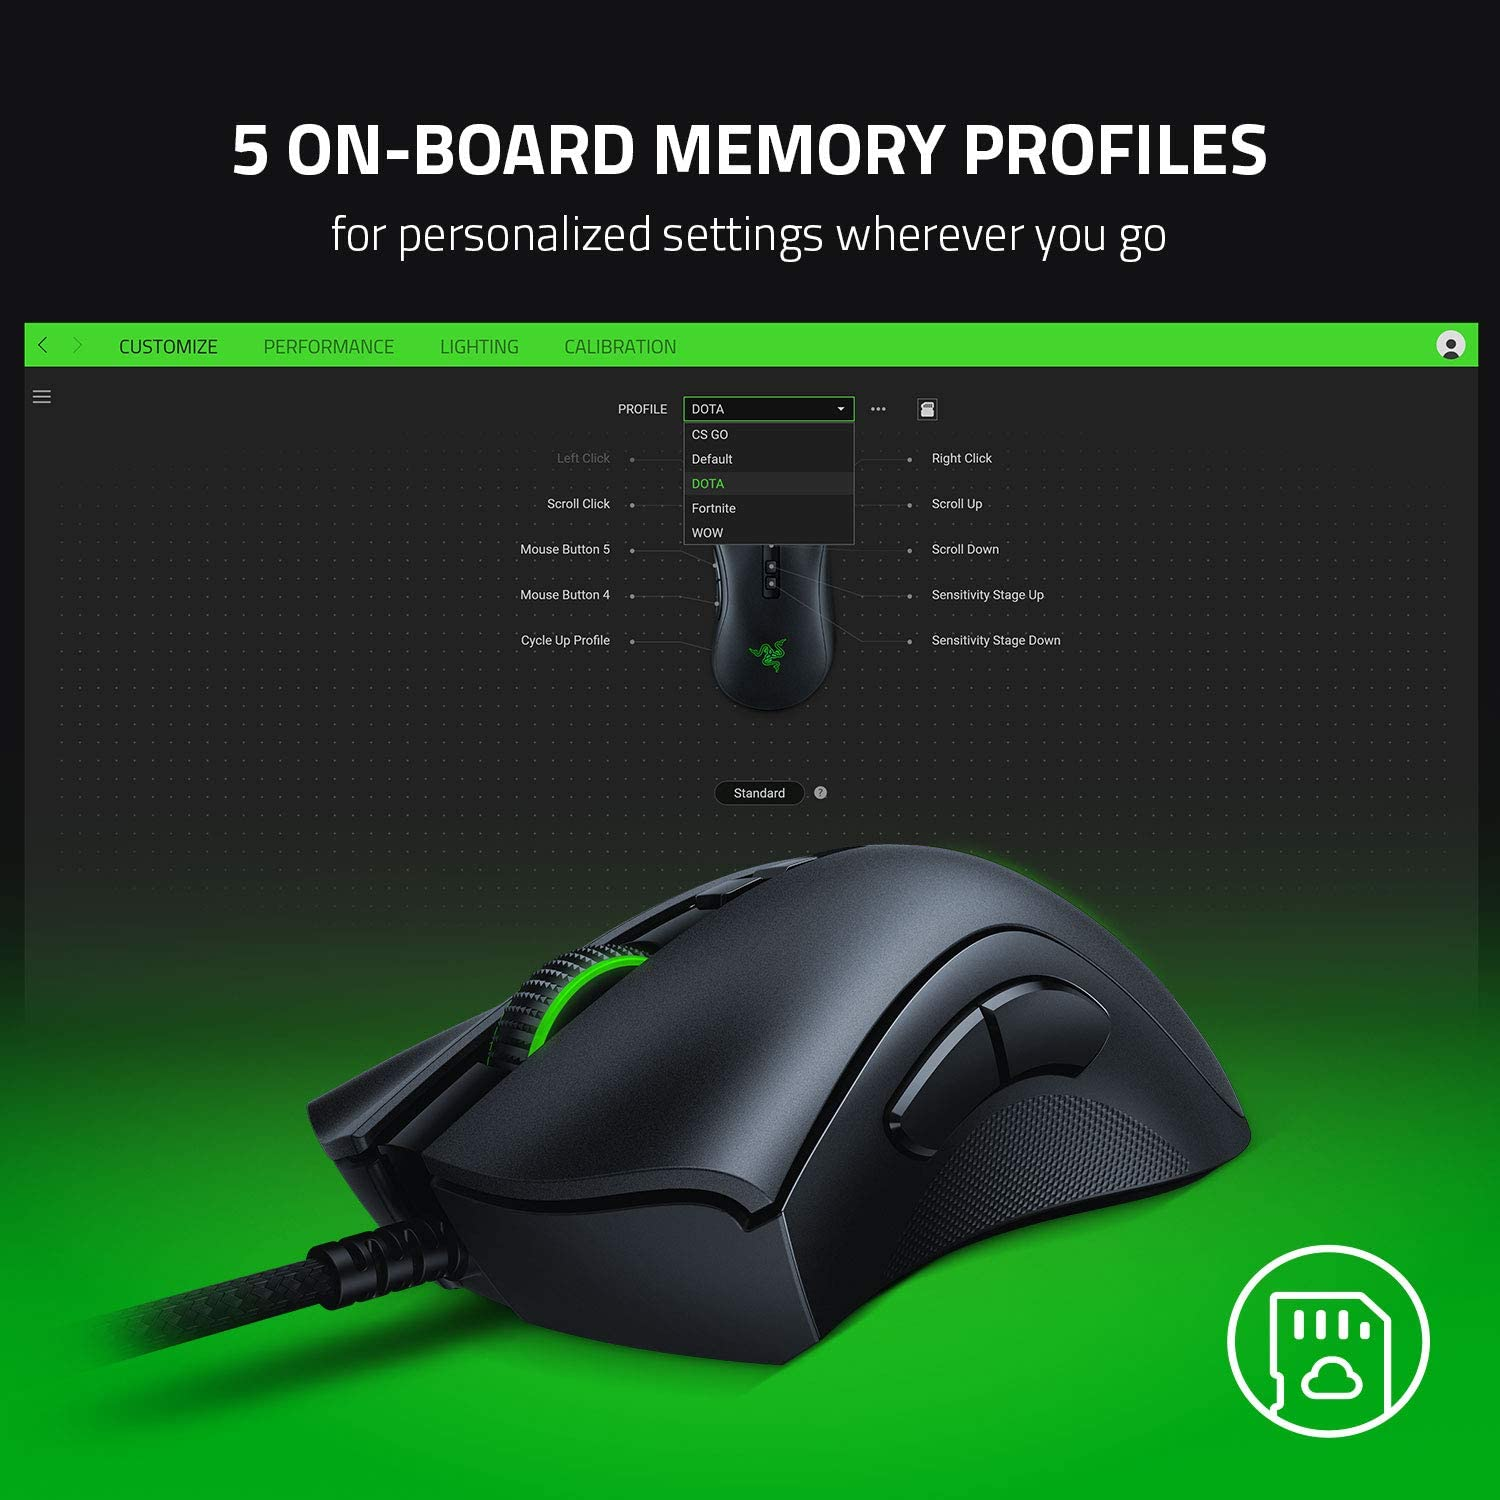 Razer DeathAdder V2 Wired Gaming Mouse with Best-in-class Ergonomics 10